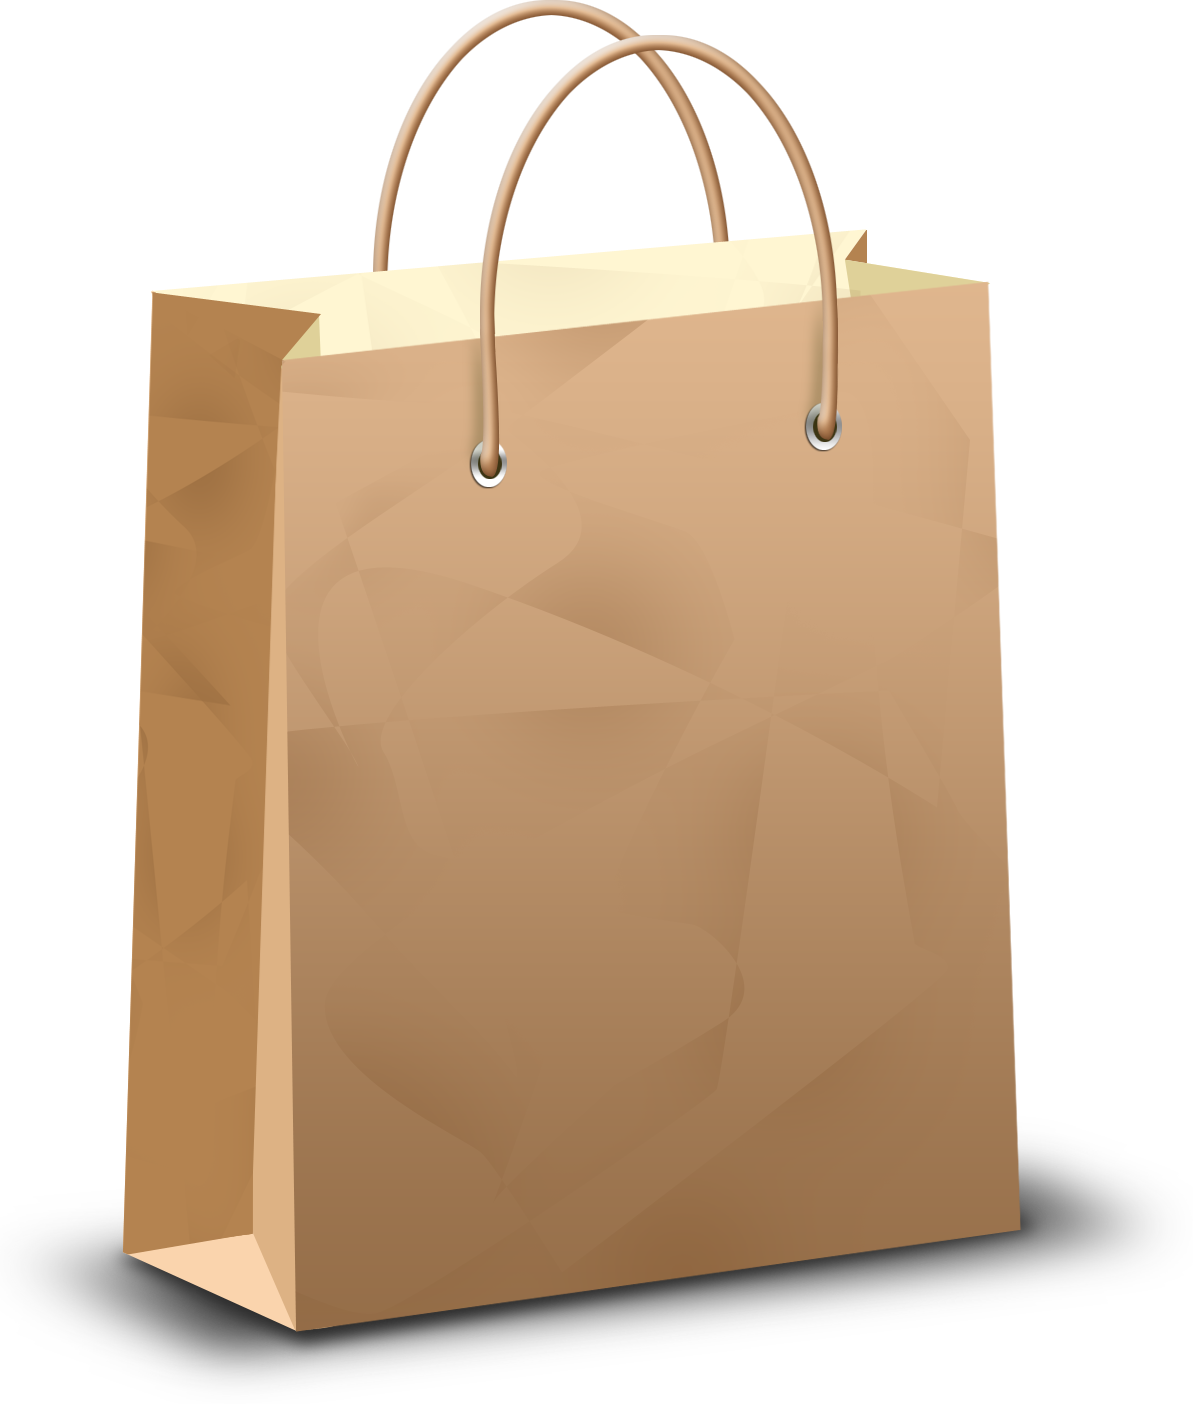 Bag Vector Download Png Free image #33921